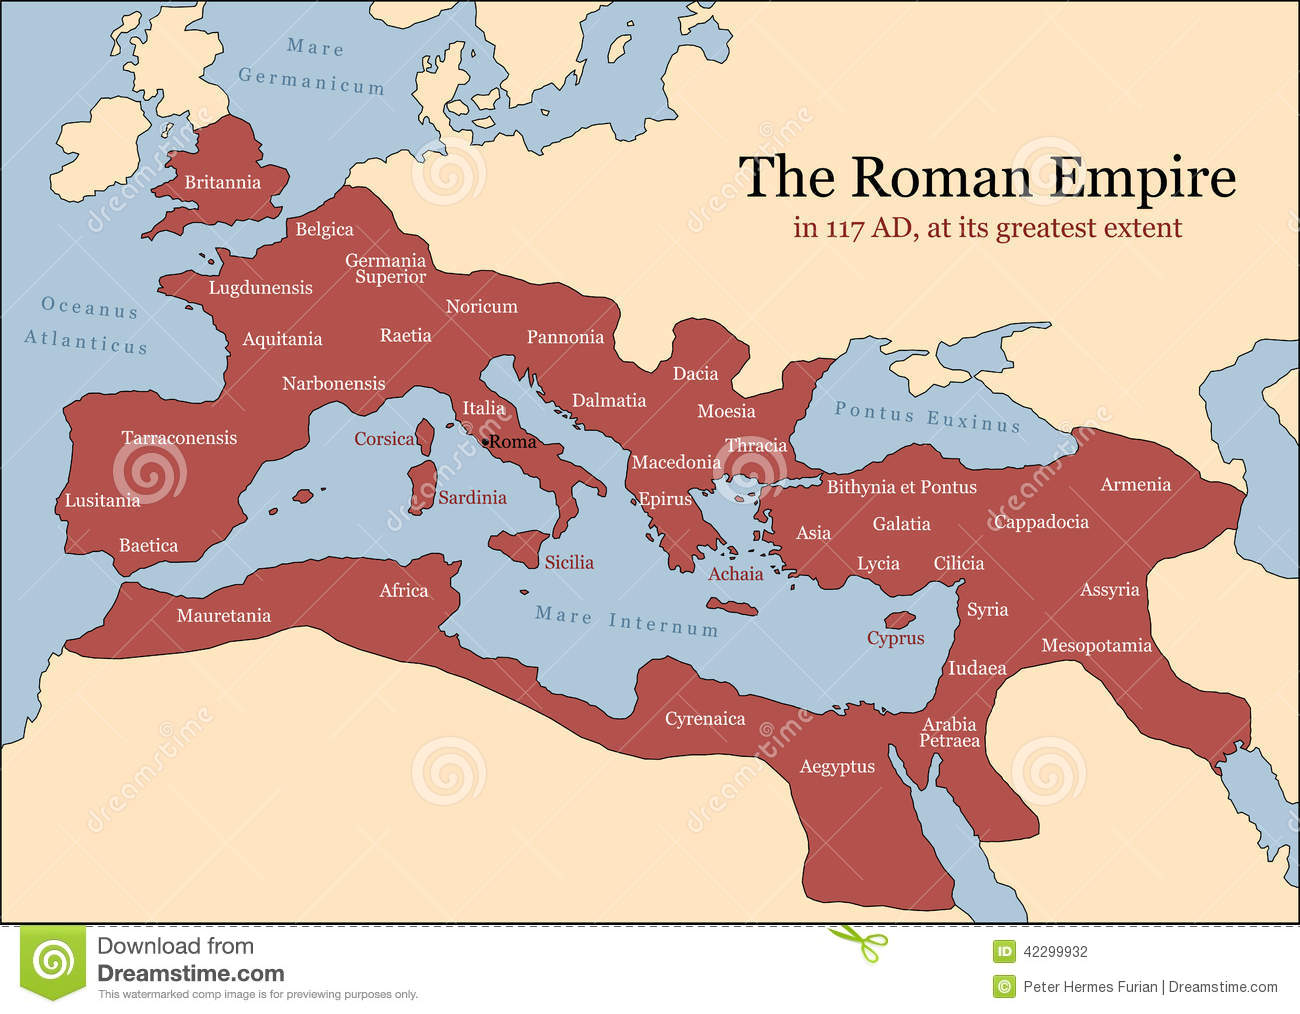 an analysis of the roman empire at its peak governed over most of the eastern world